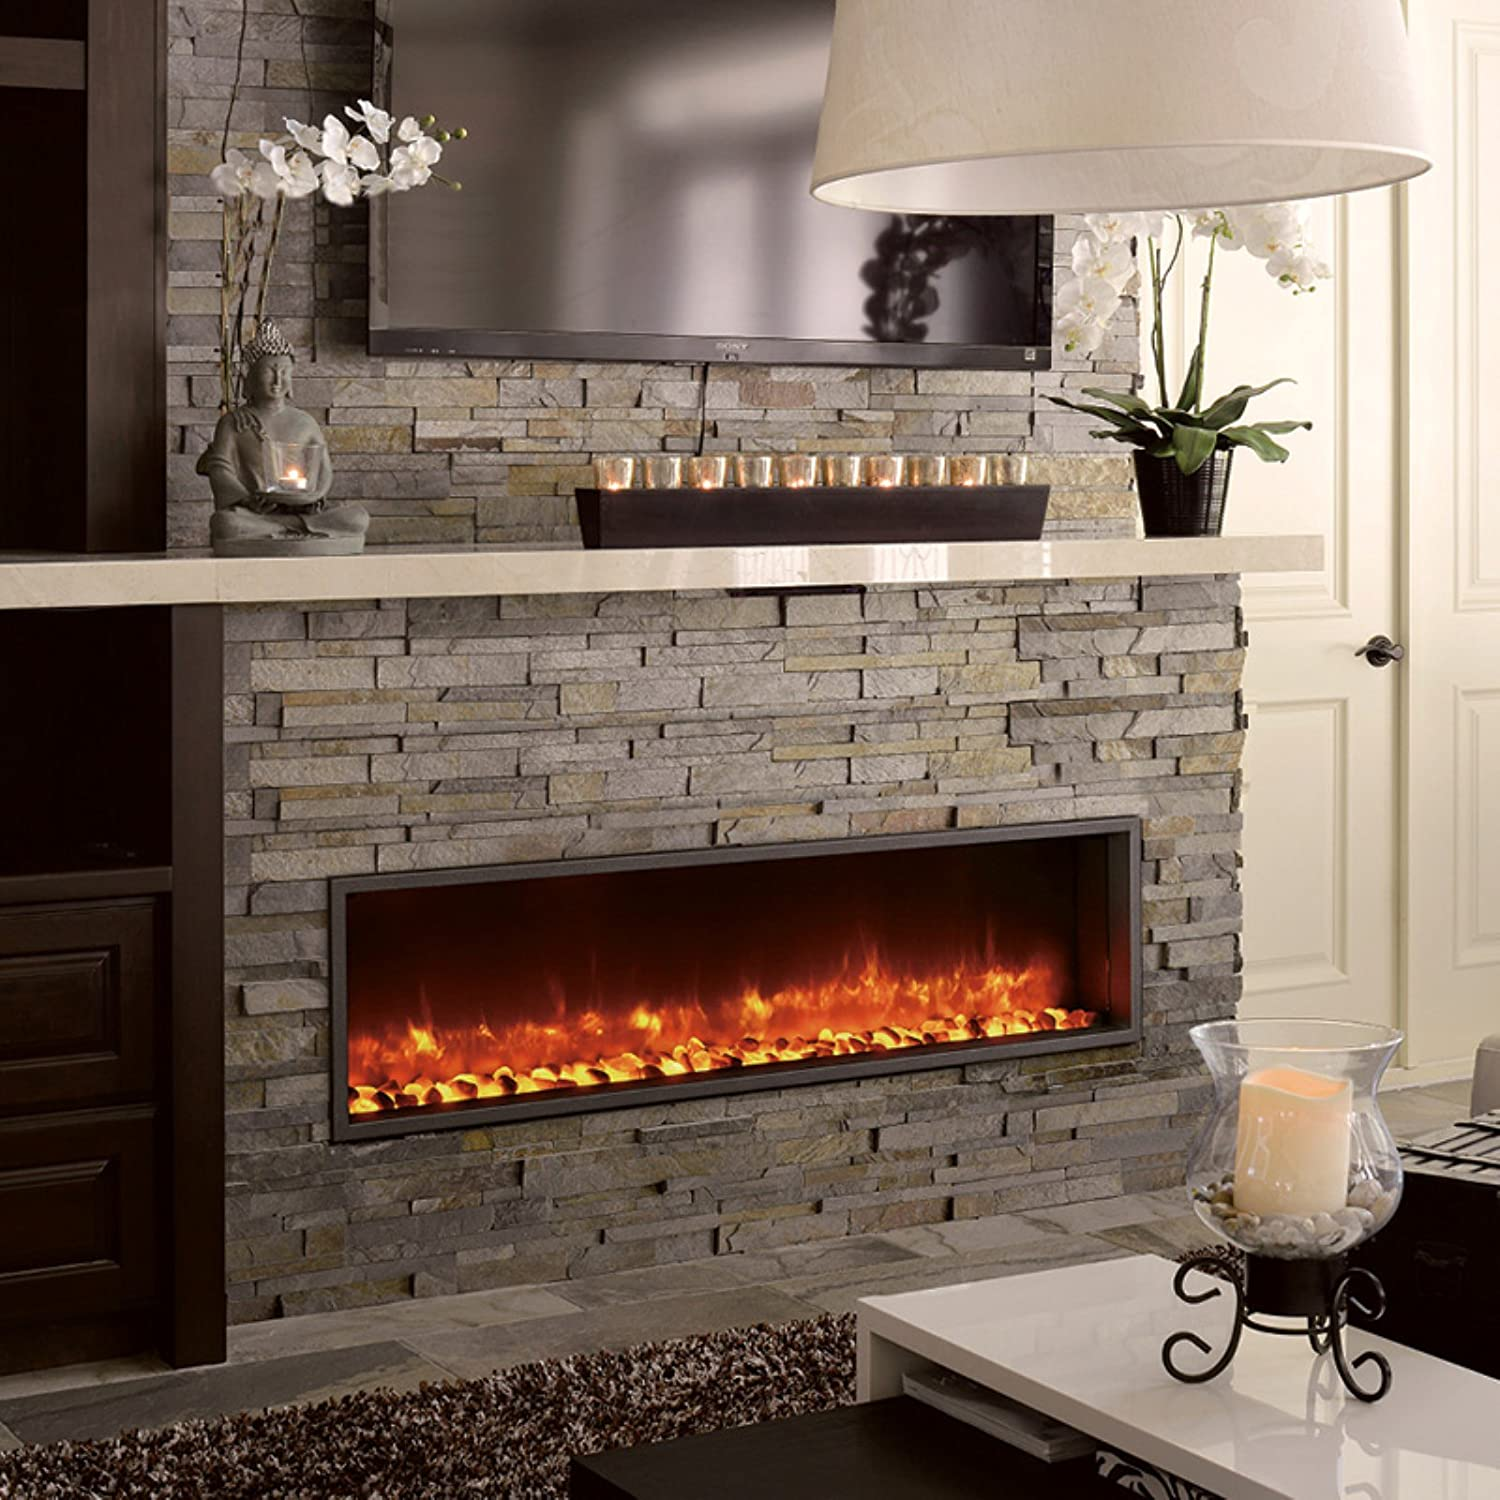 DYNASTY DY BT63 Built in Linear Electric Fireplace 63 Inch - Good Electric Fireplace Idea